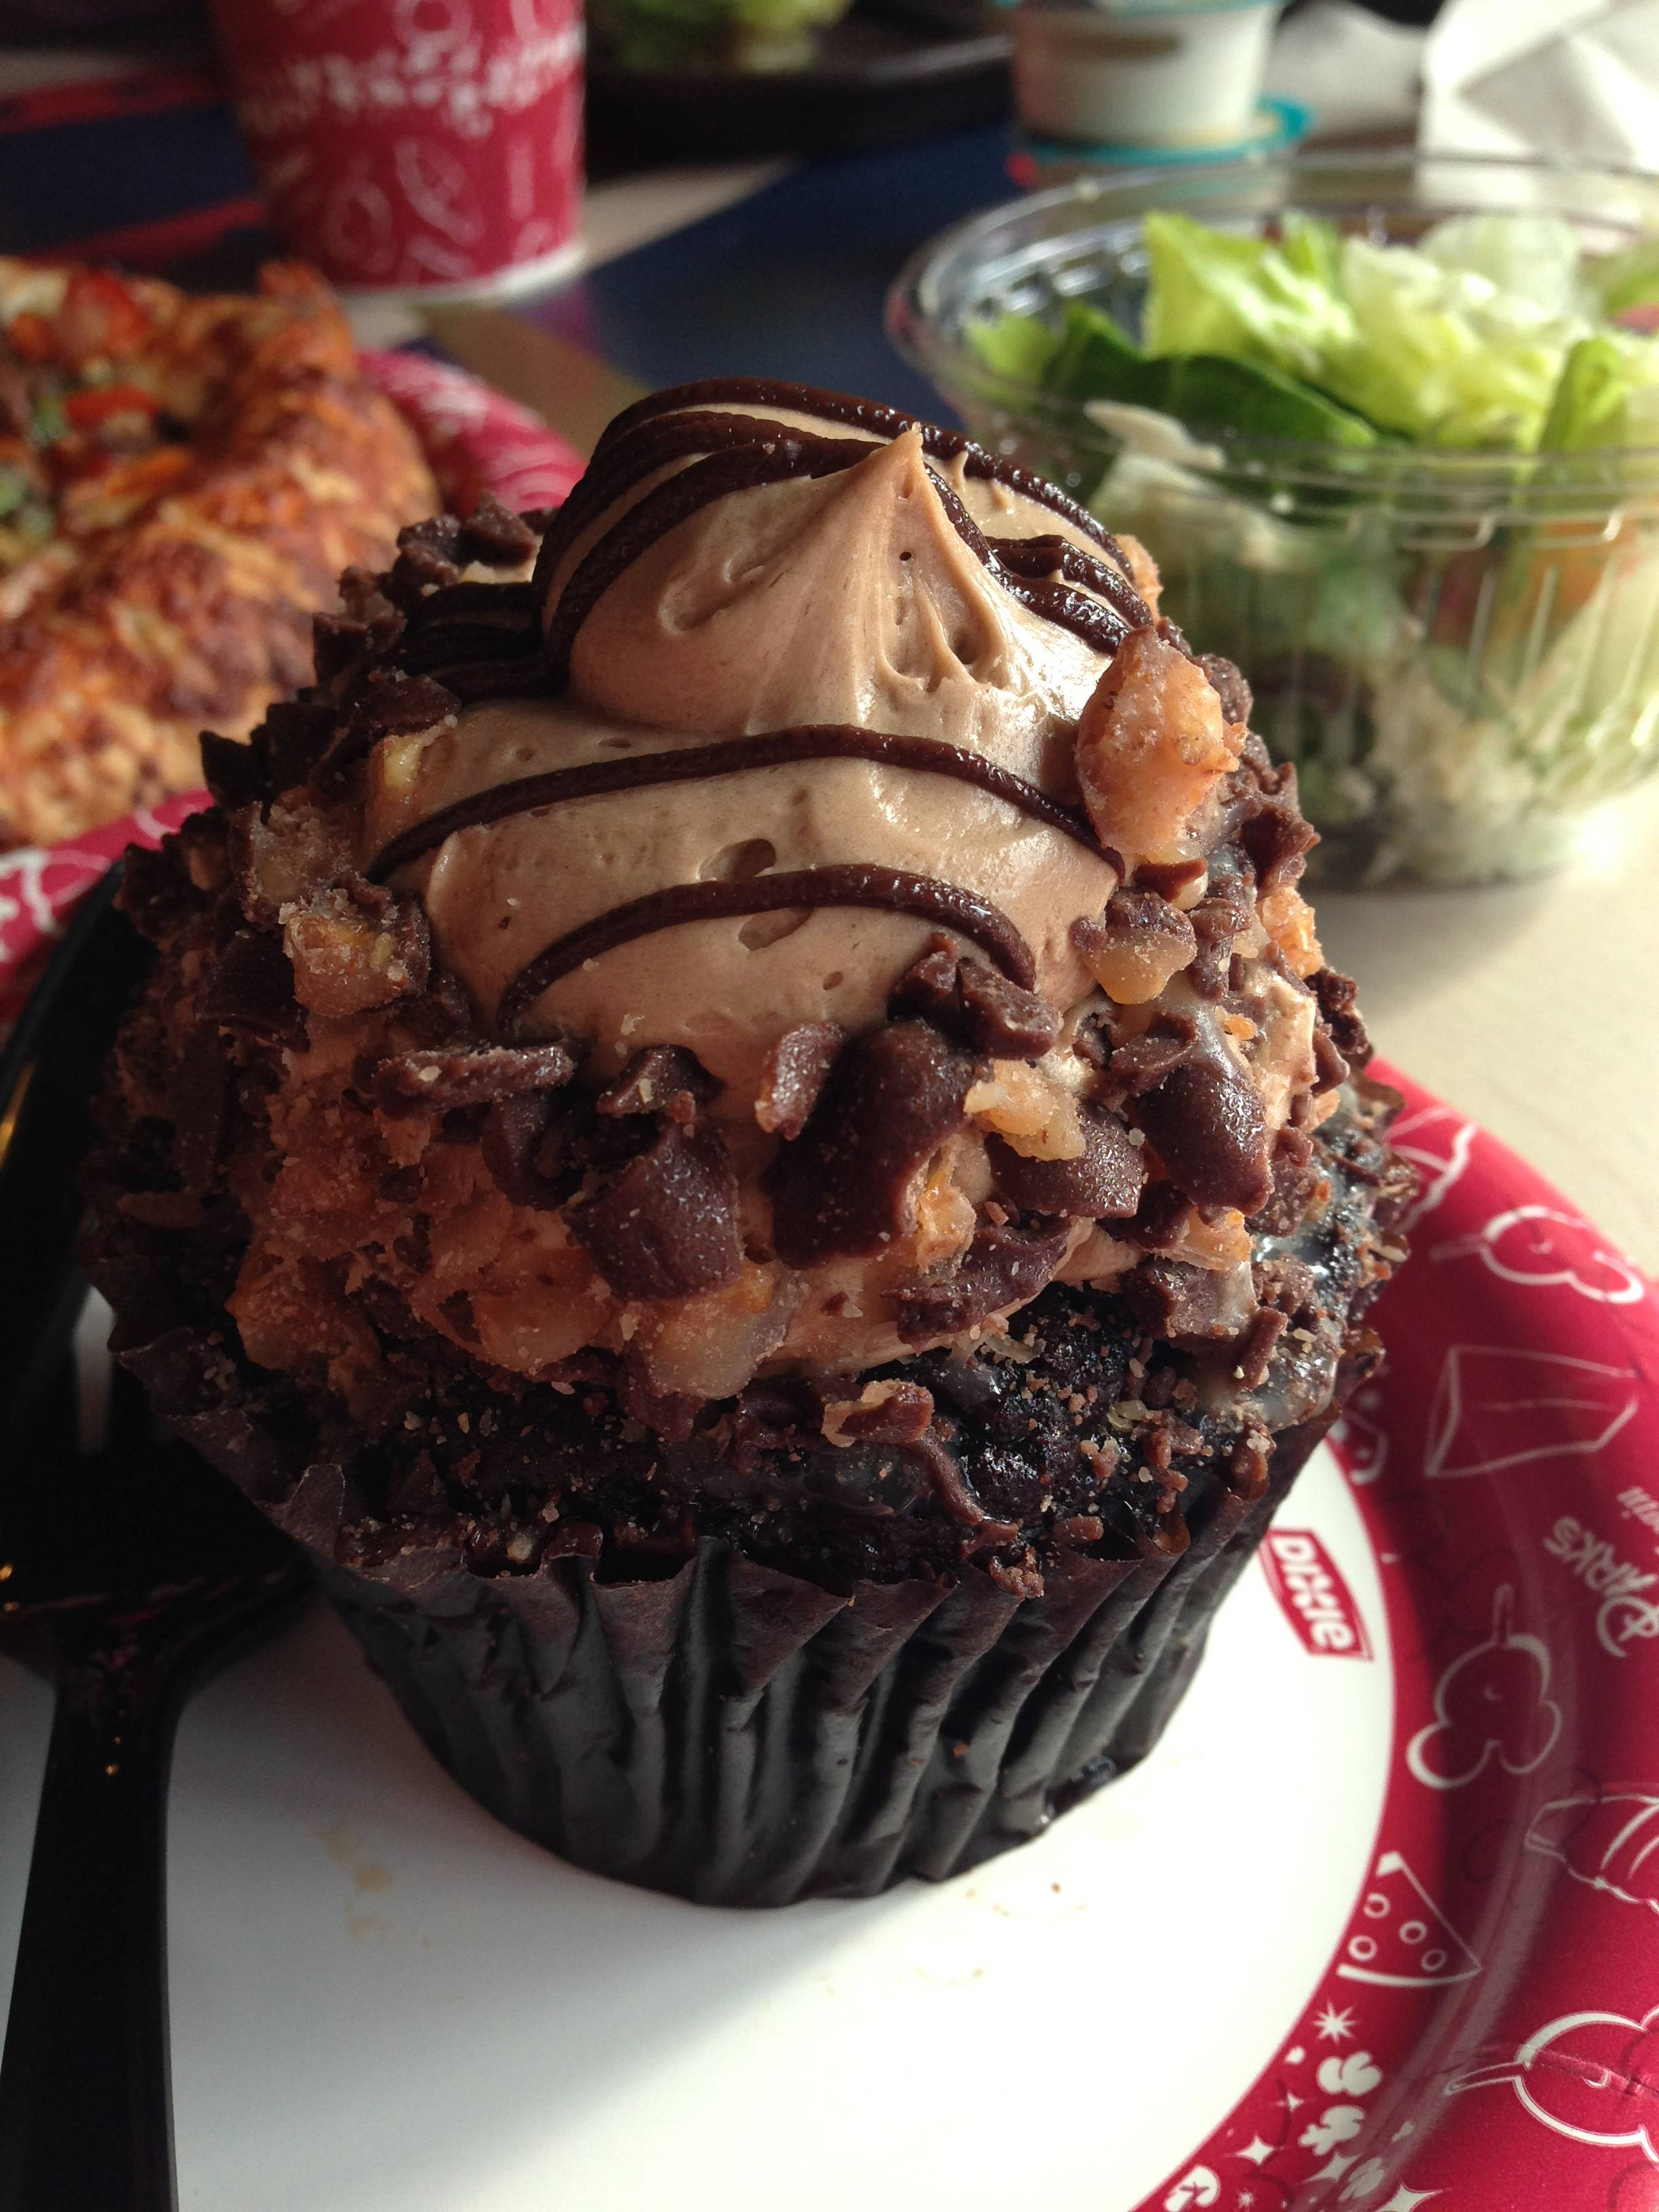 Cappuccino Cupcake from Toy Story Pizza Planet at Disney's Hollywood Studios.